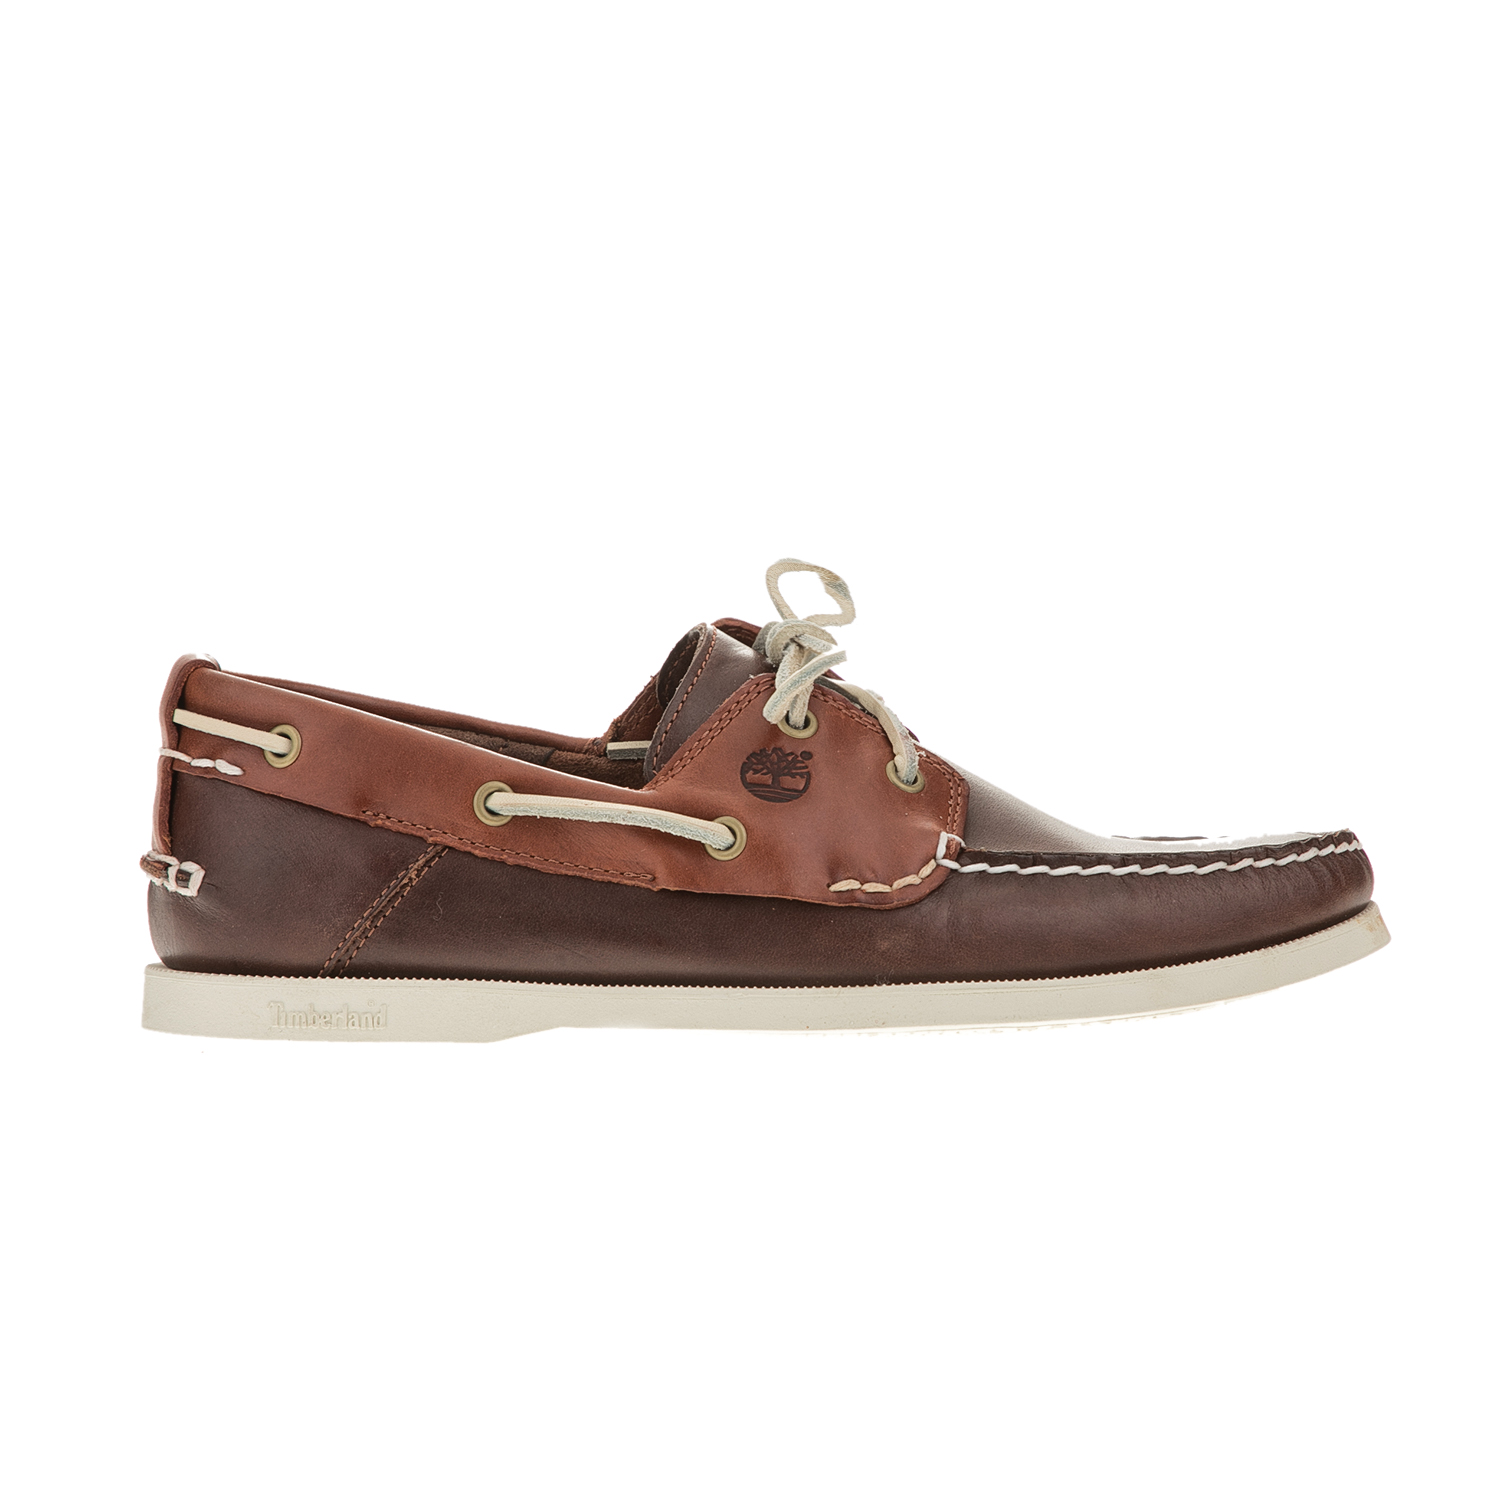 9b70a55d8ab TIMBERLAND - Ανδρικά boat shoes TIMBERLAND καφέ ⋆ EliteShoes.gr